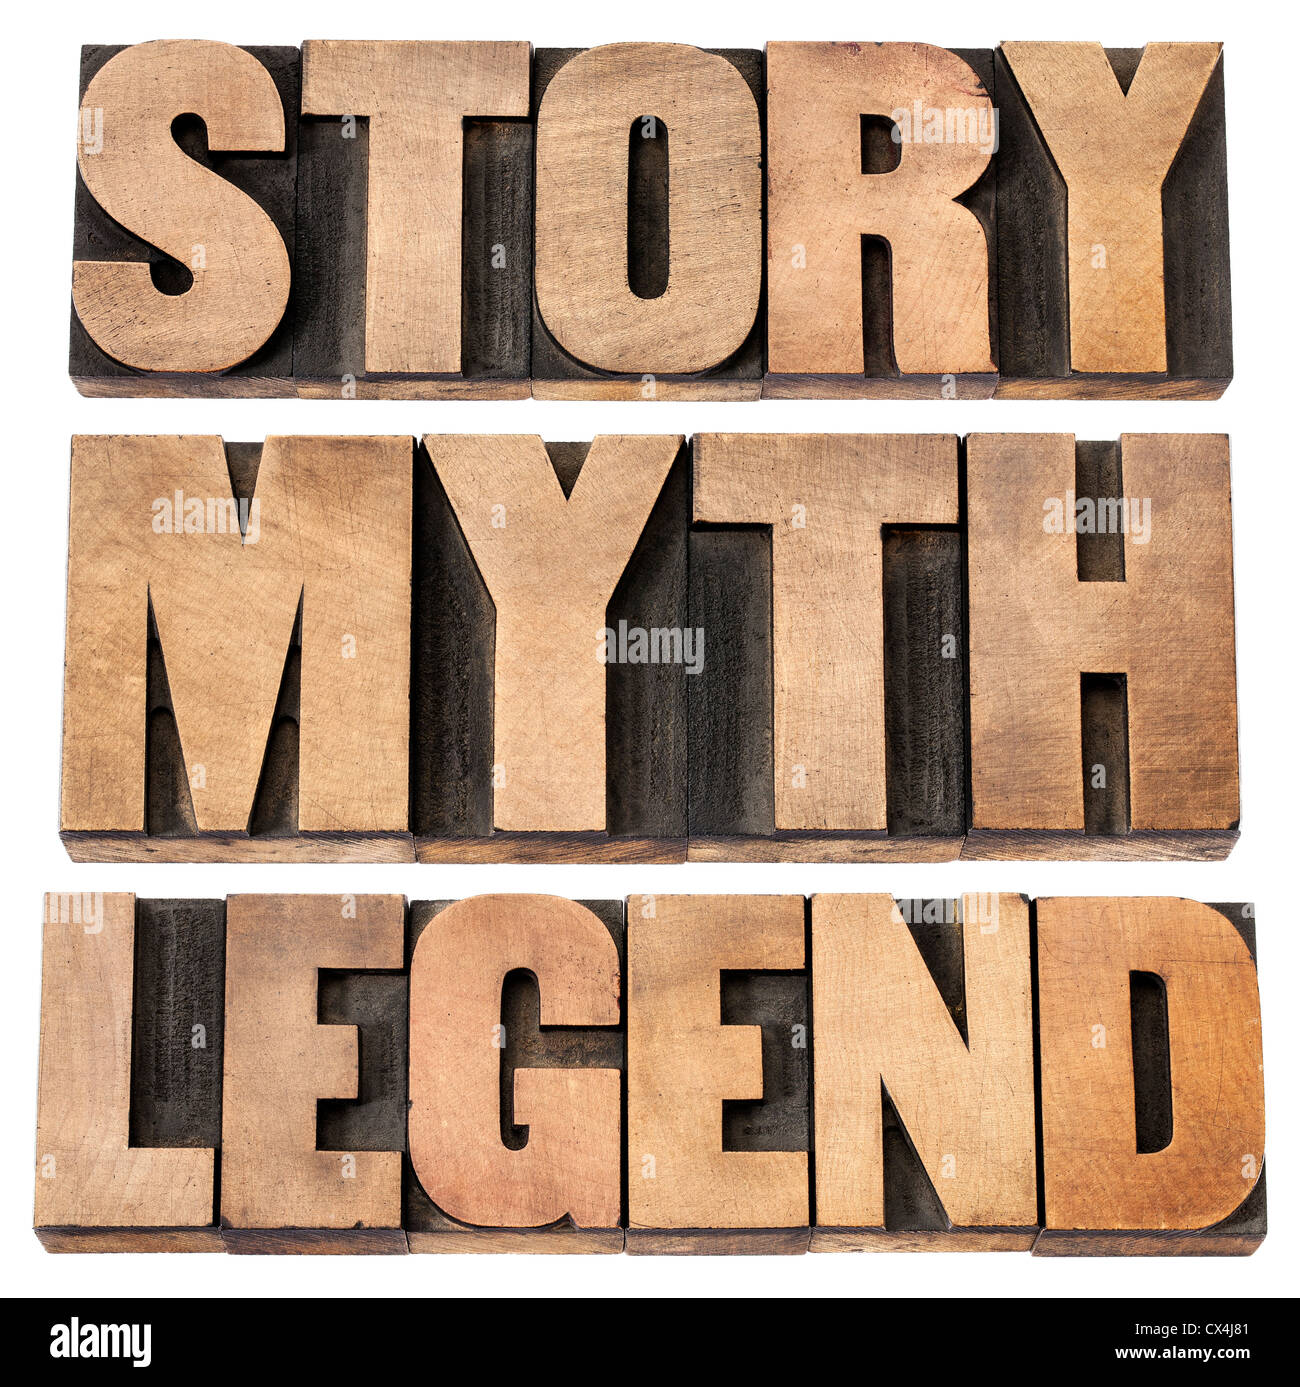 story, myth, legend - storytelling concept - isolated words in vintage letterpress wood type - Stock Image